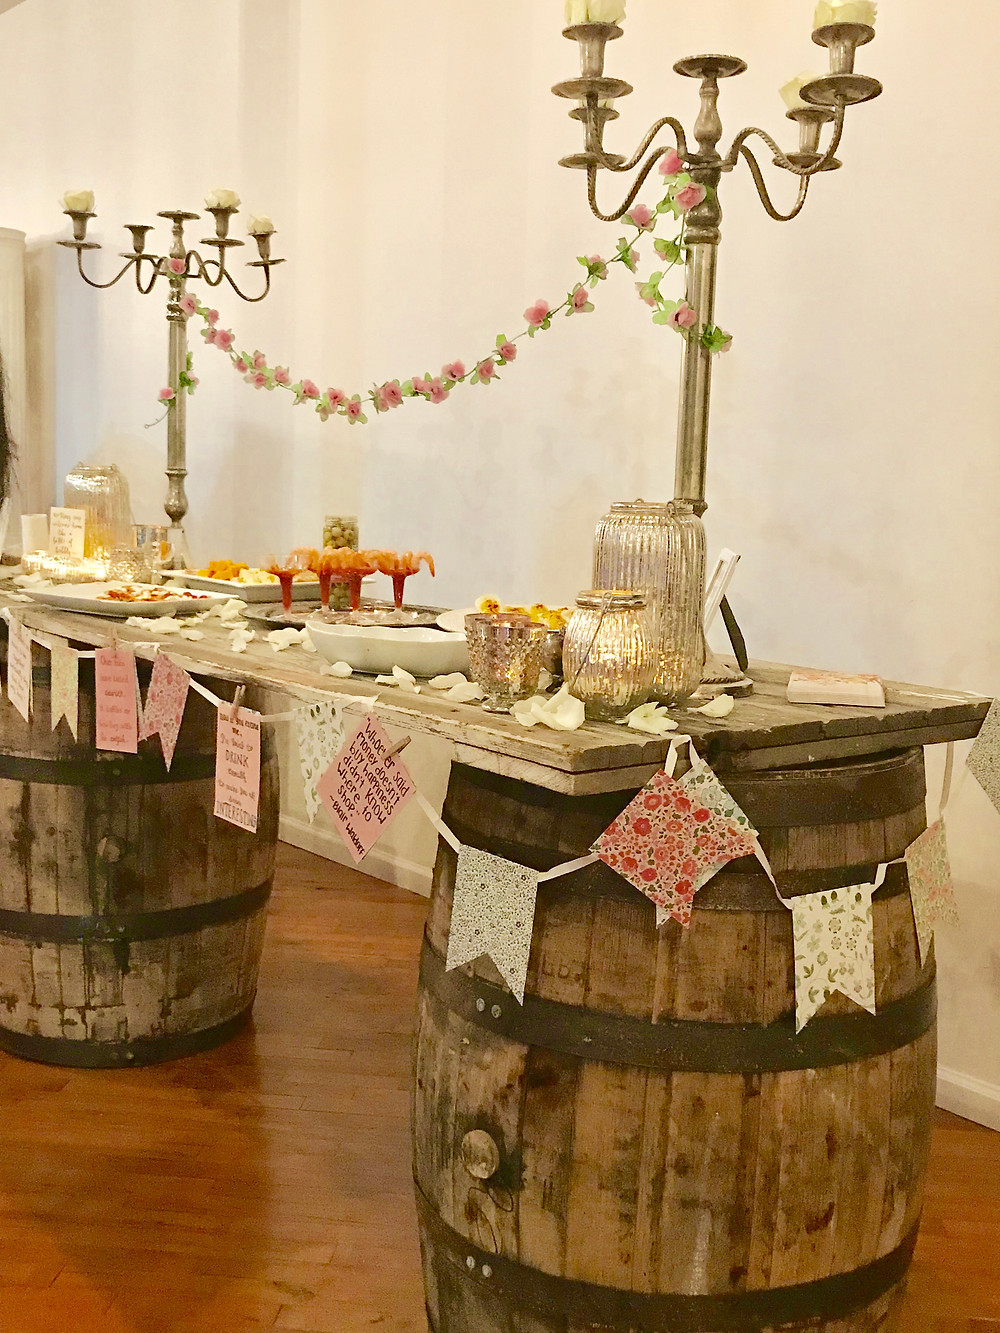 Vintage whiskey barrels and barn door create the perfect appetizer table for your event.